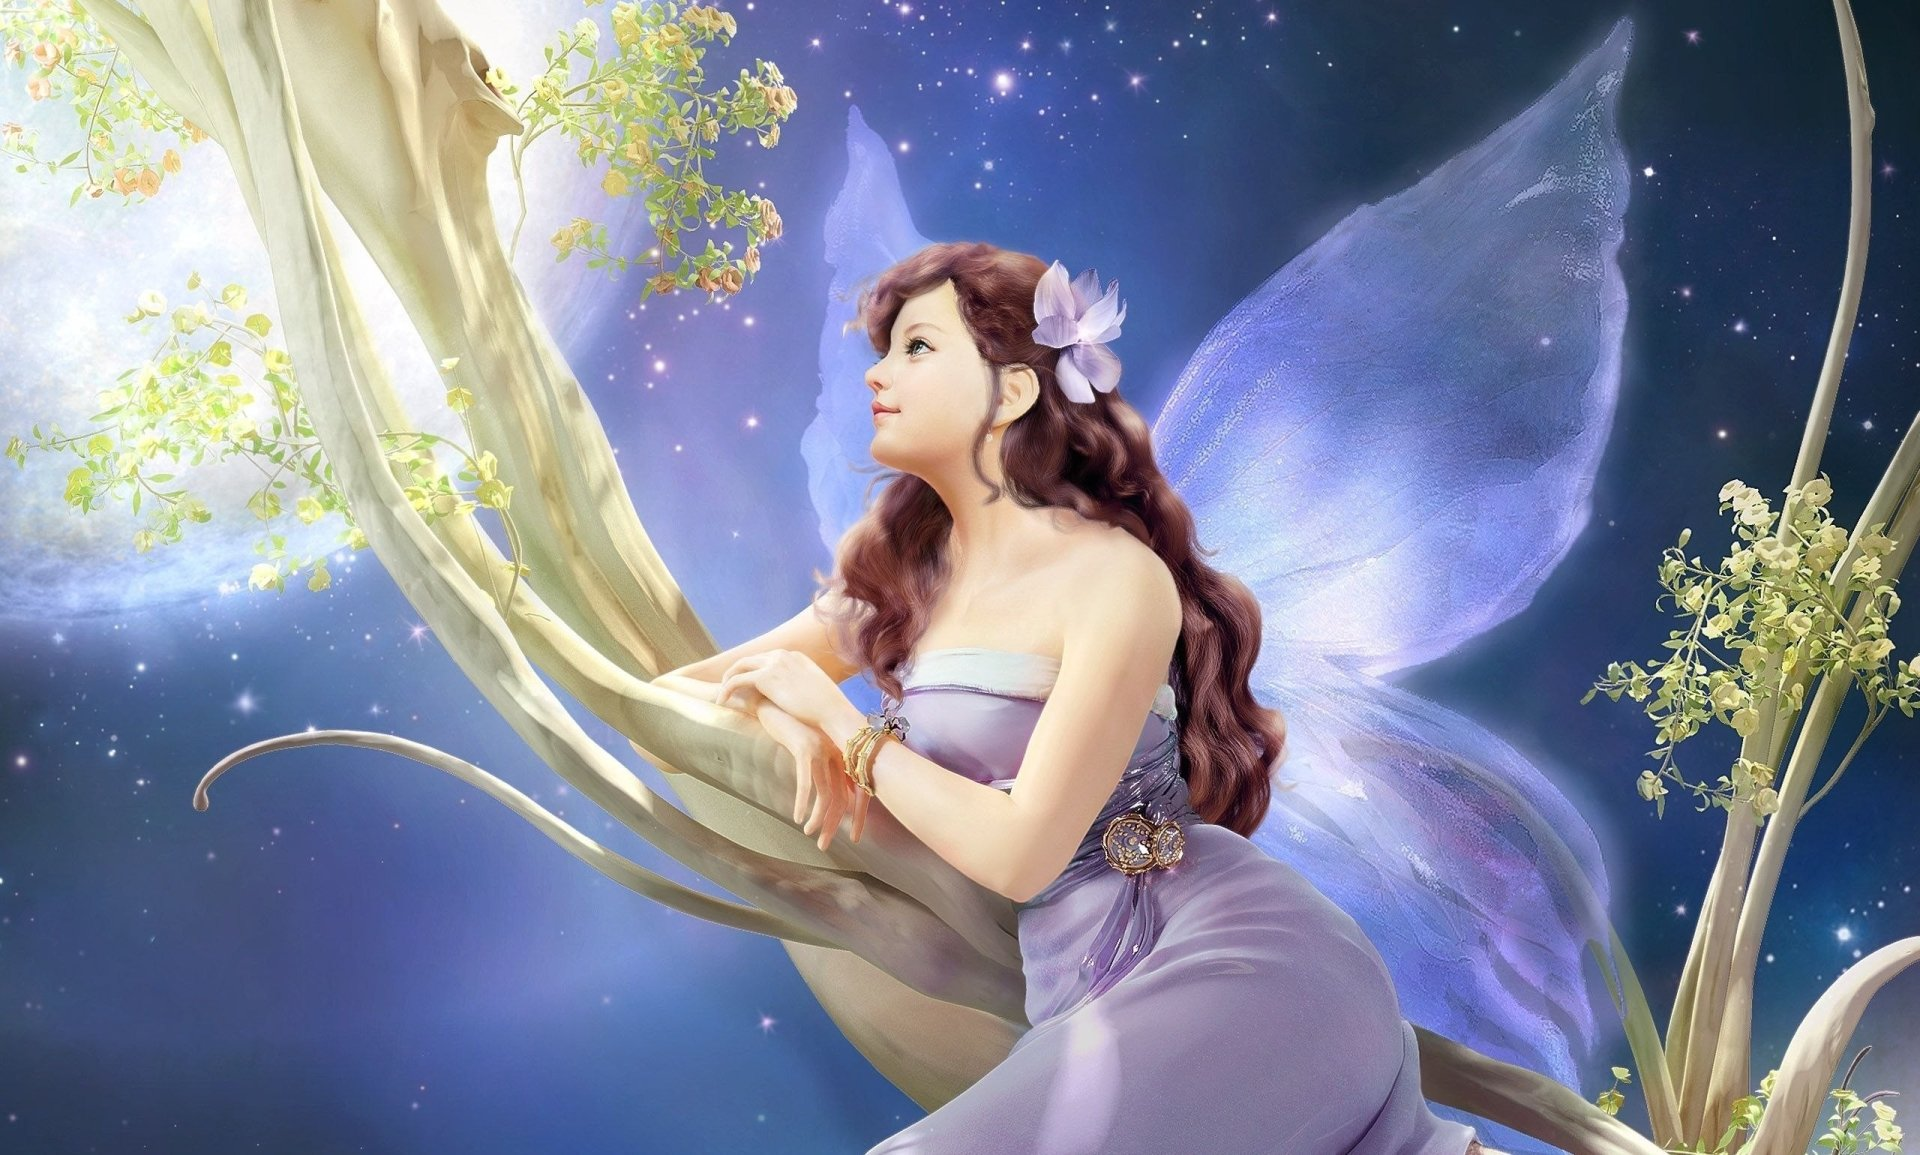 Wallpapers ID:270972